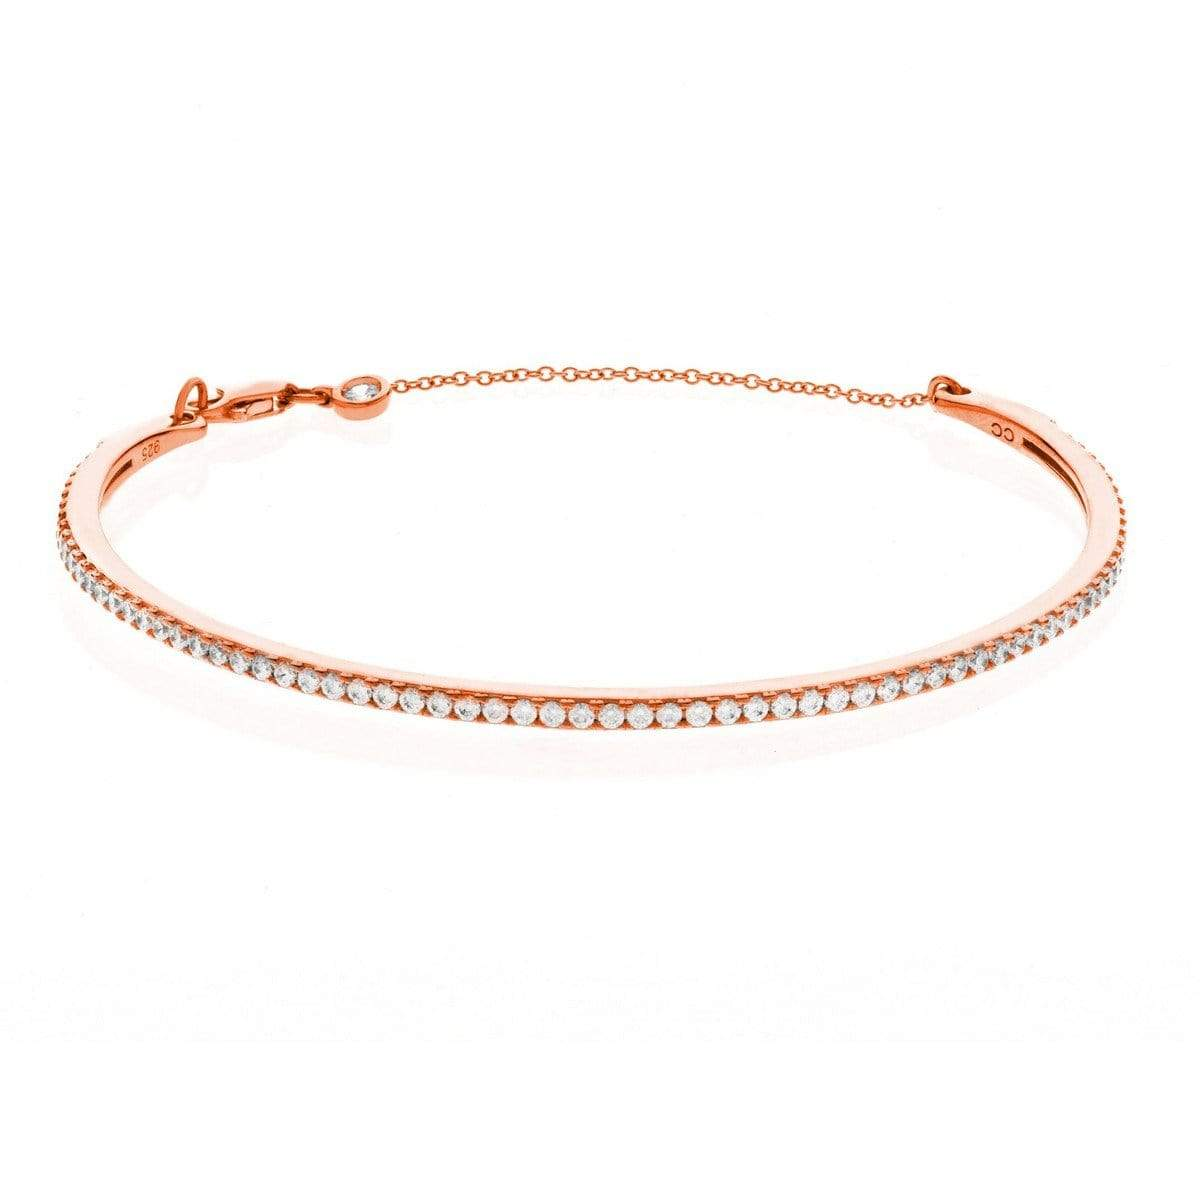 Crislu Jewelry CRISLU Pave Chain Bangle Finished in 18KT Rose Gold